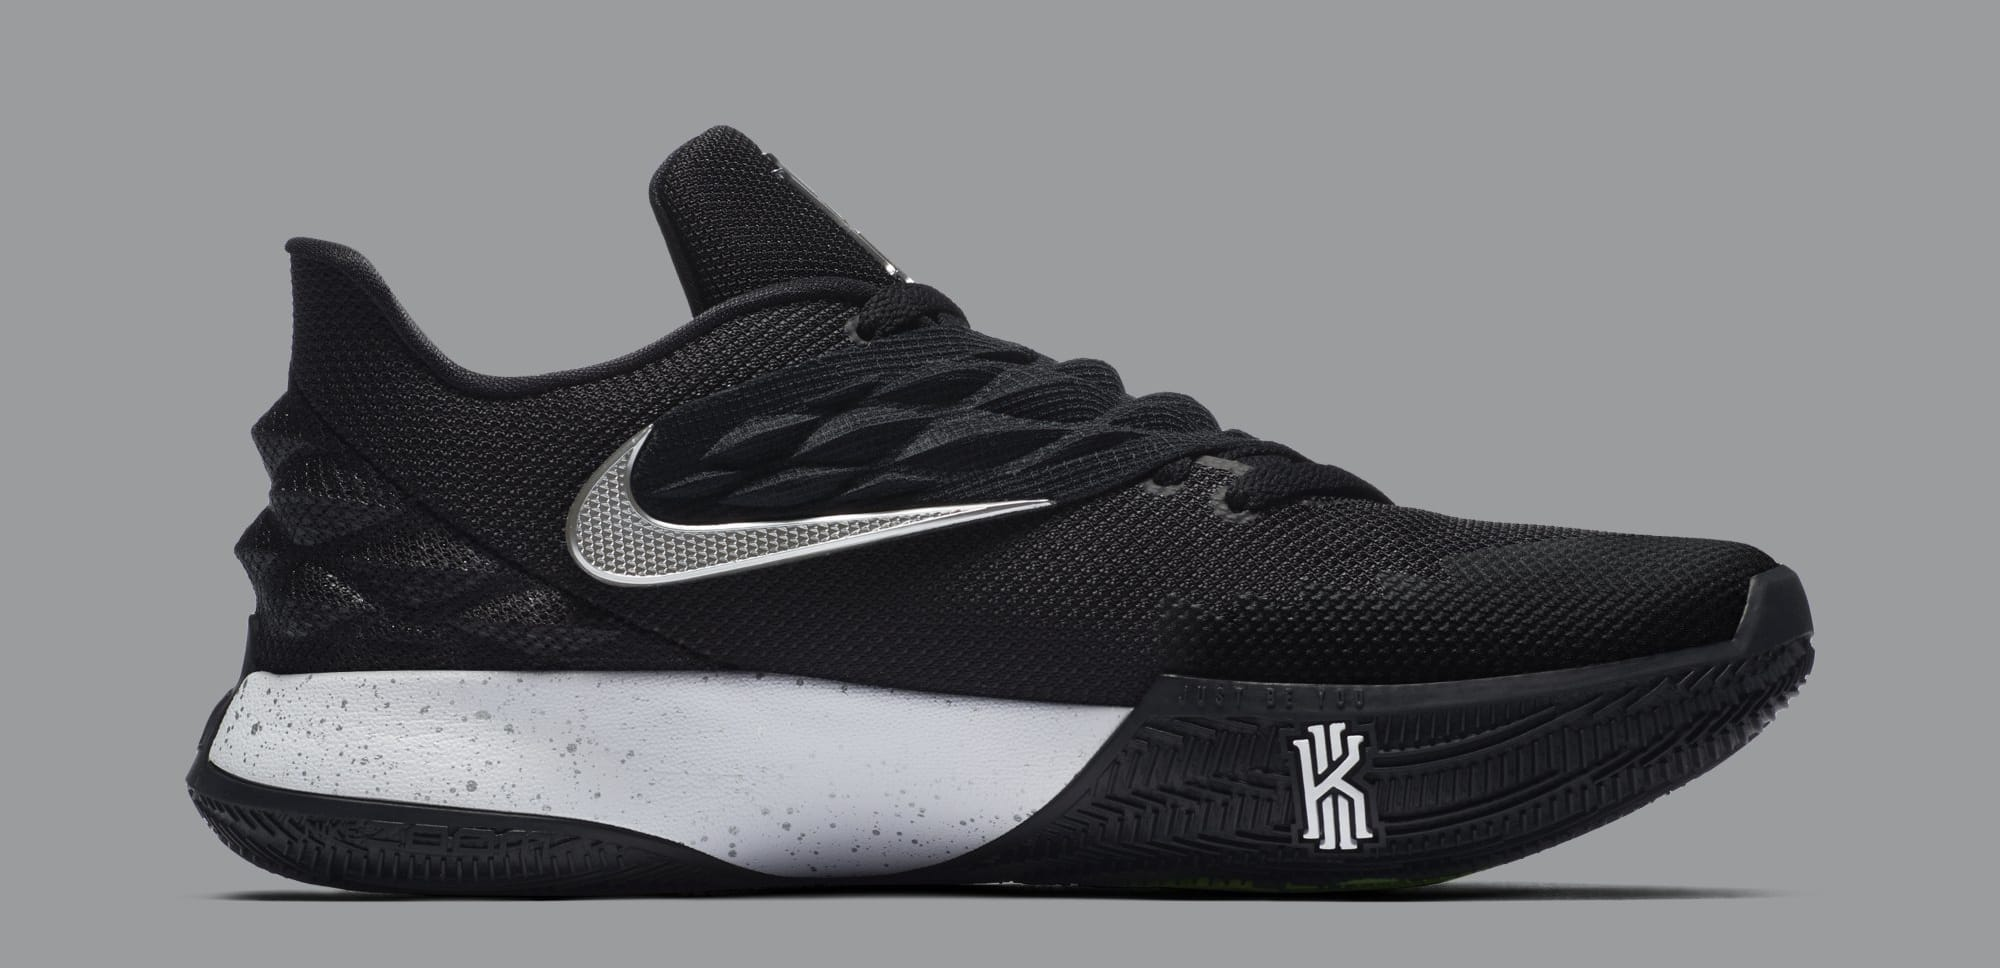 Nike Kyrie 4 Low 'Black/Metallic Silver' AO8979-003 (Medial)